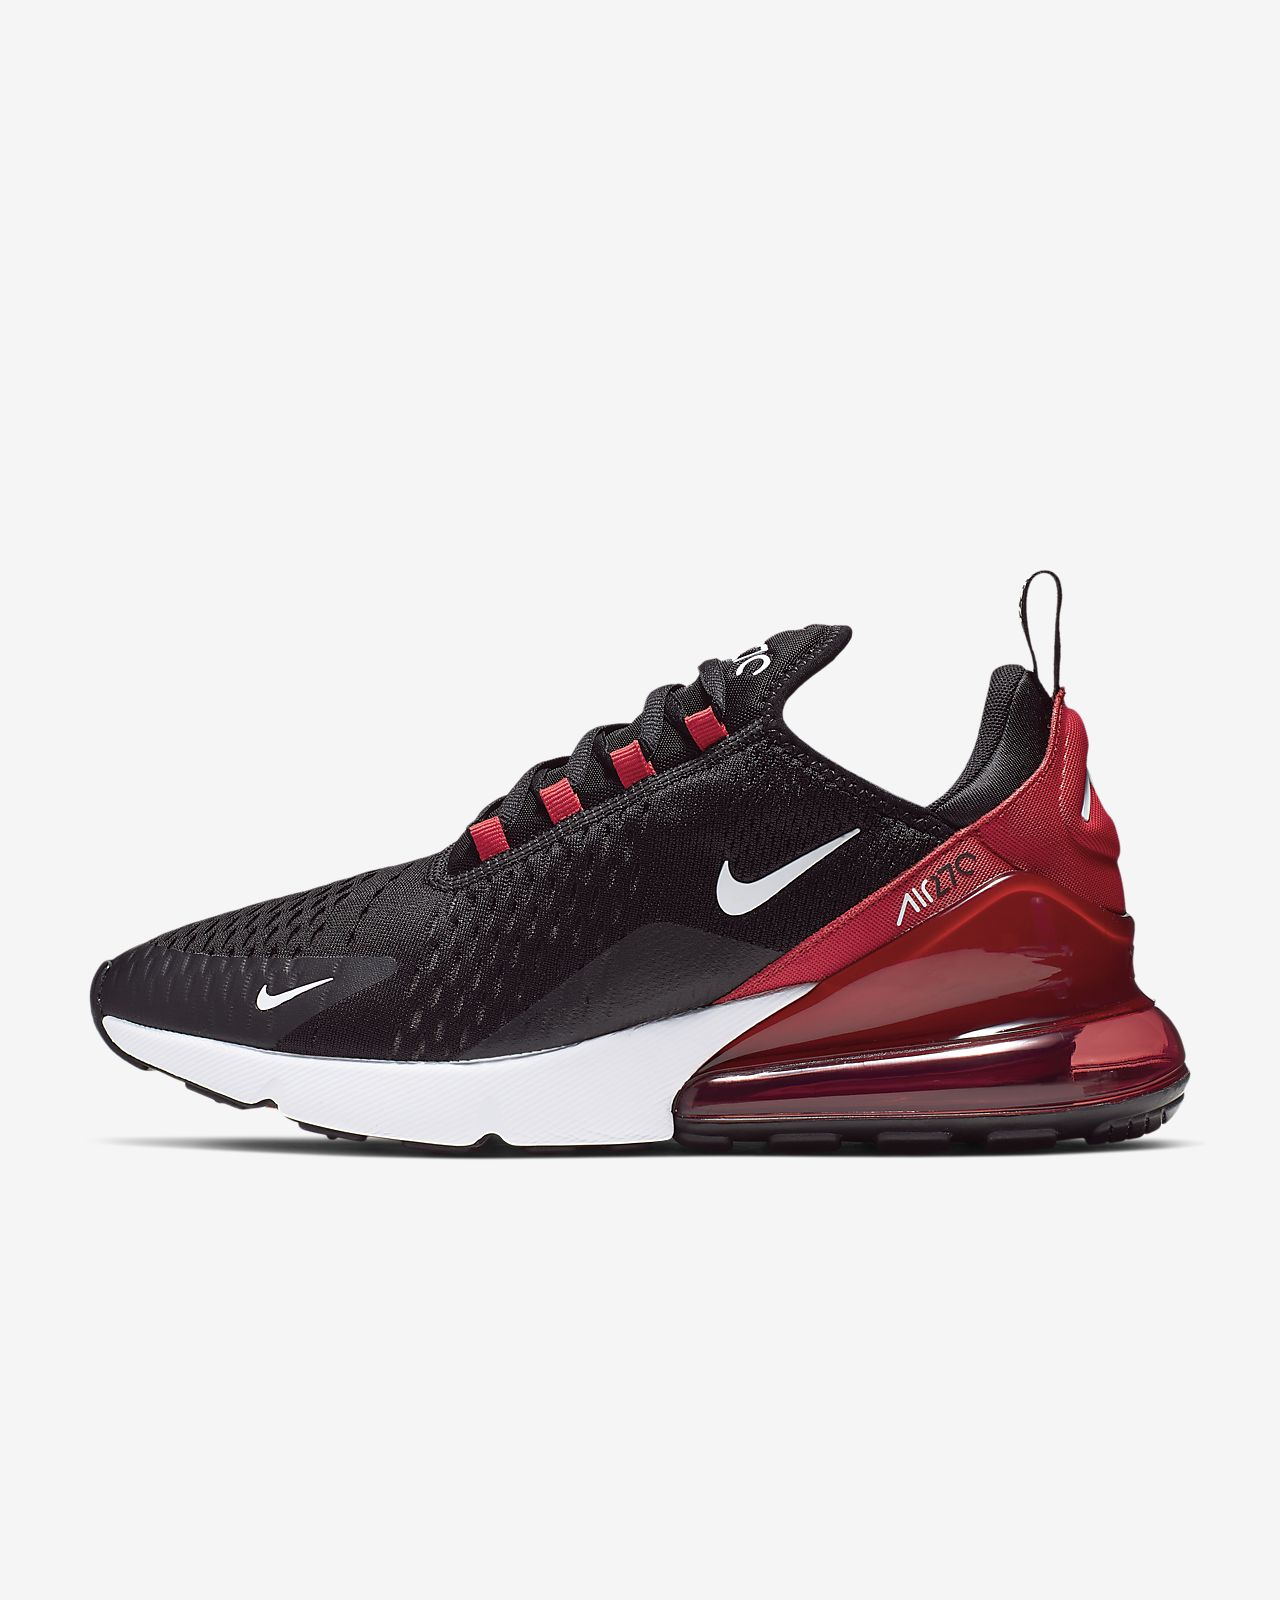 c85a3f83bcd Nike Air Max 270 Men s Shoe. Nike.com GB